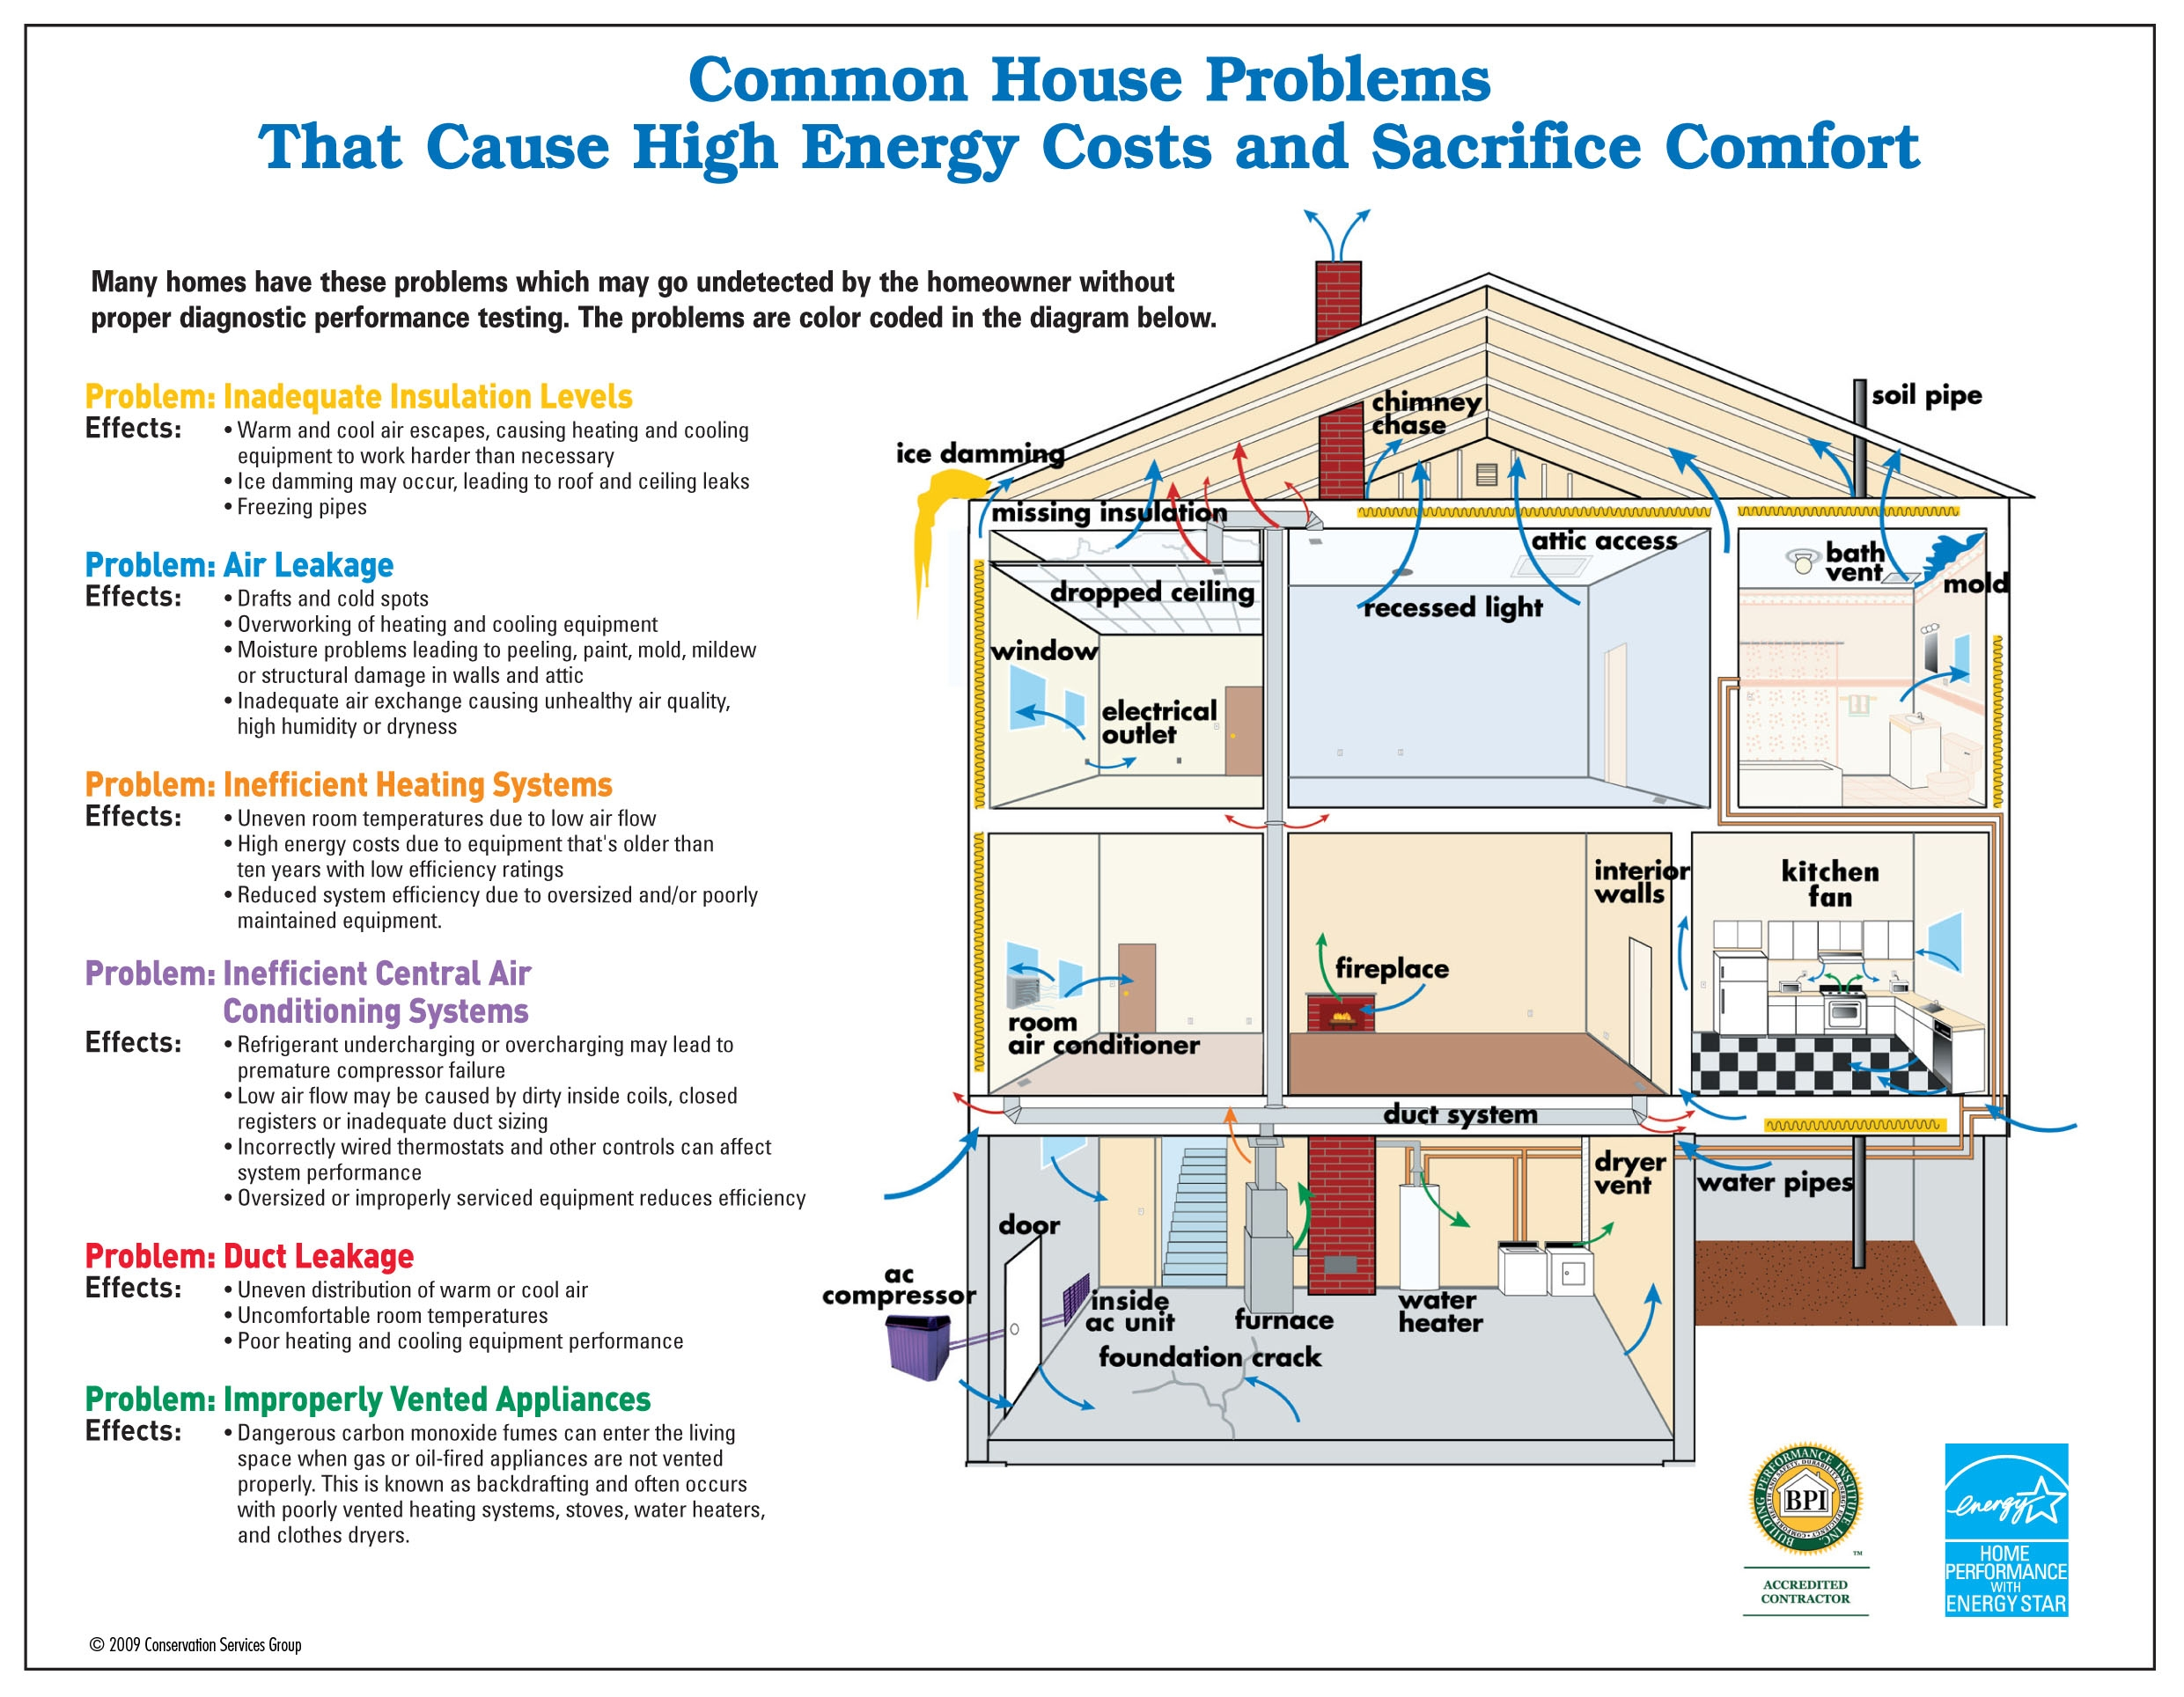 Common-house-problems